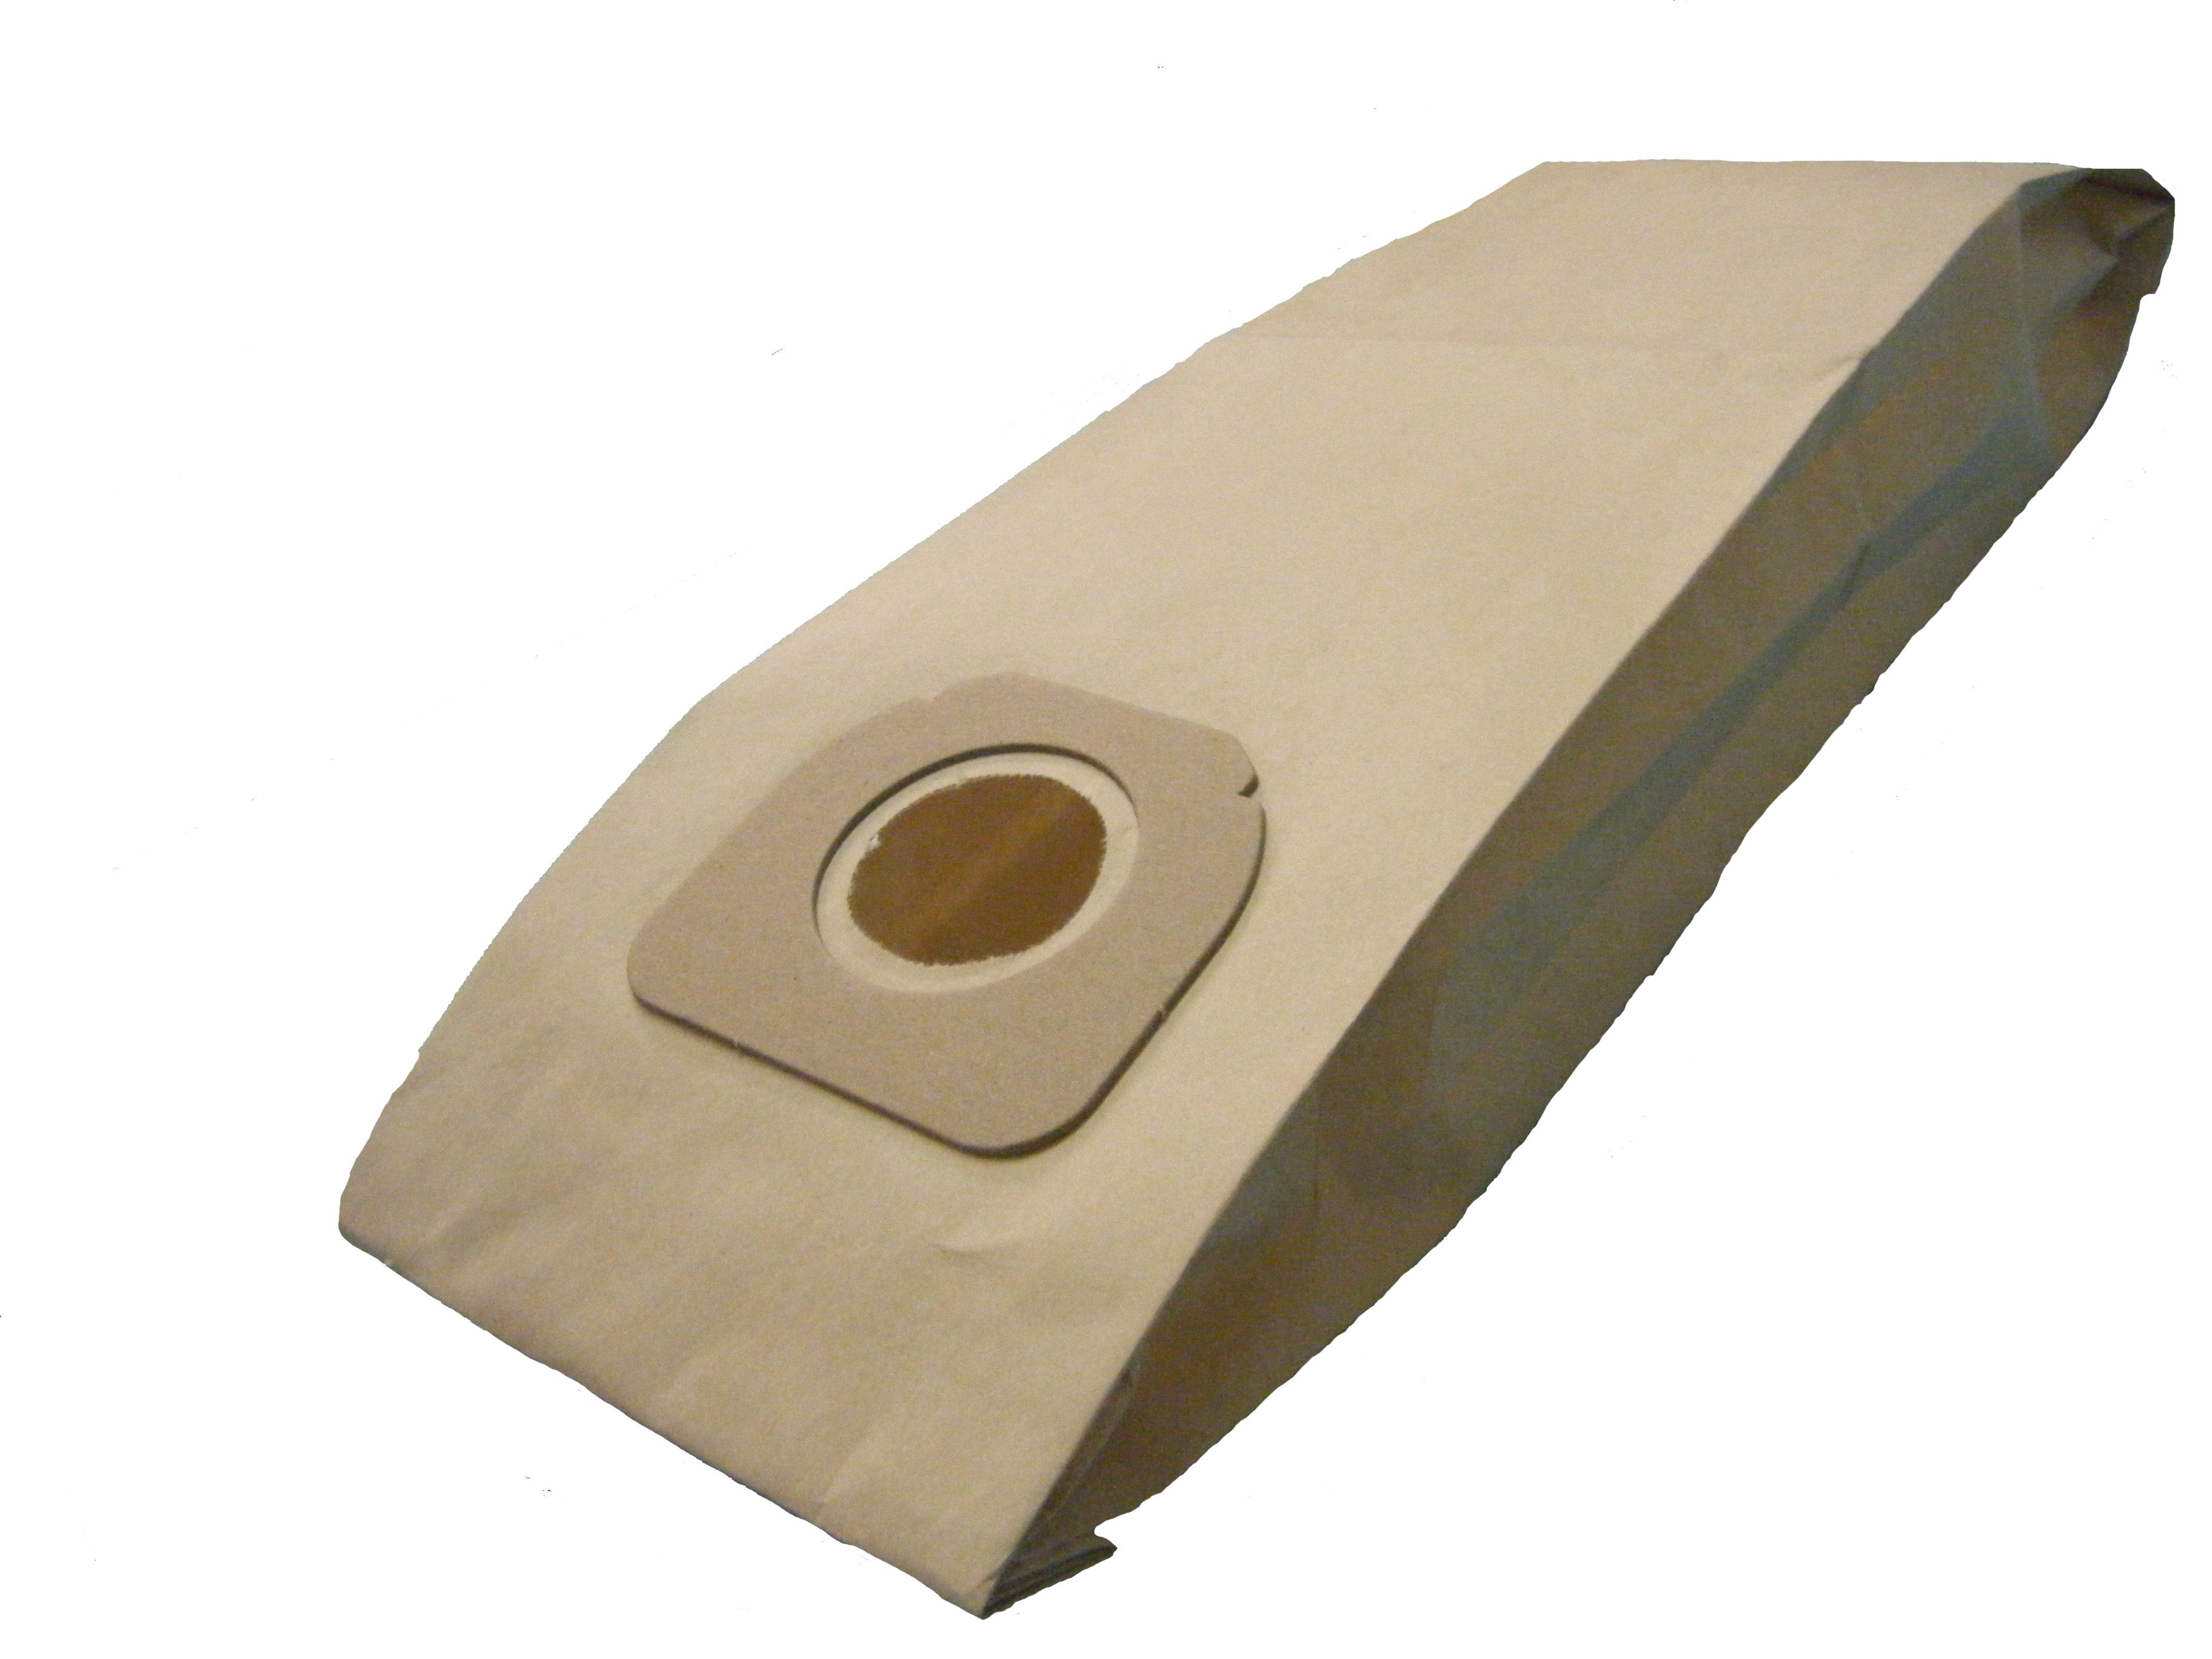 FILTA HOOVER 1100/1218 F021 PAPER VACUUM CLEANER BAG (F021)